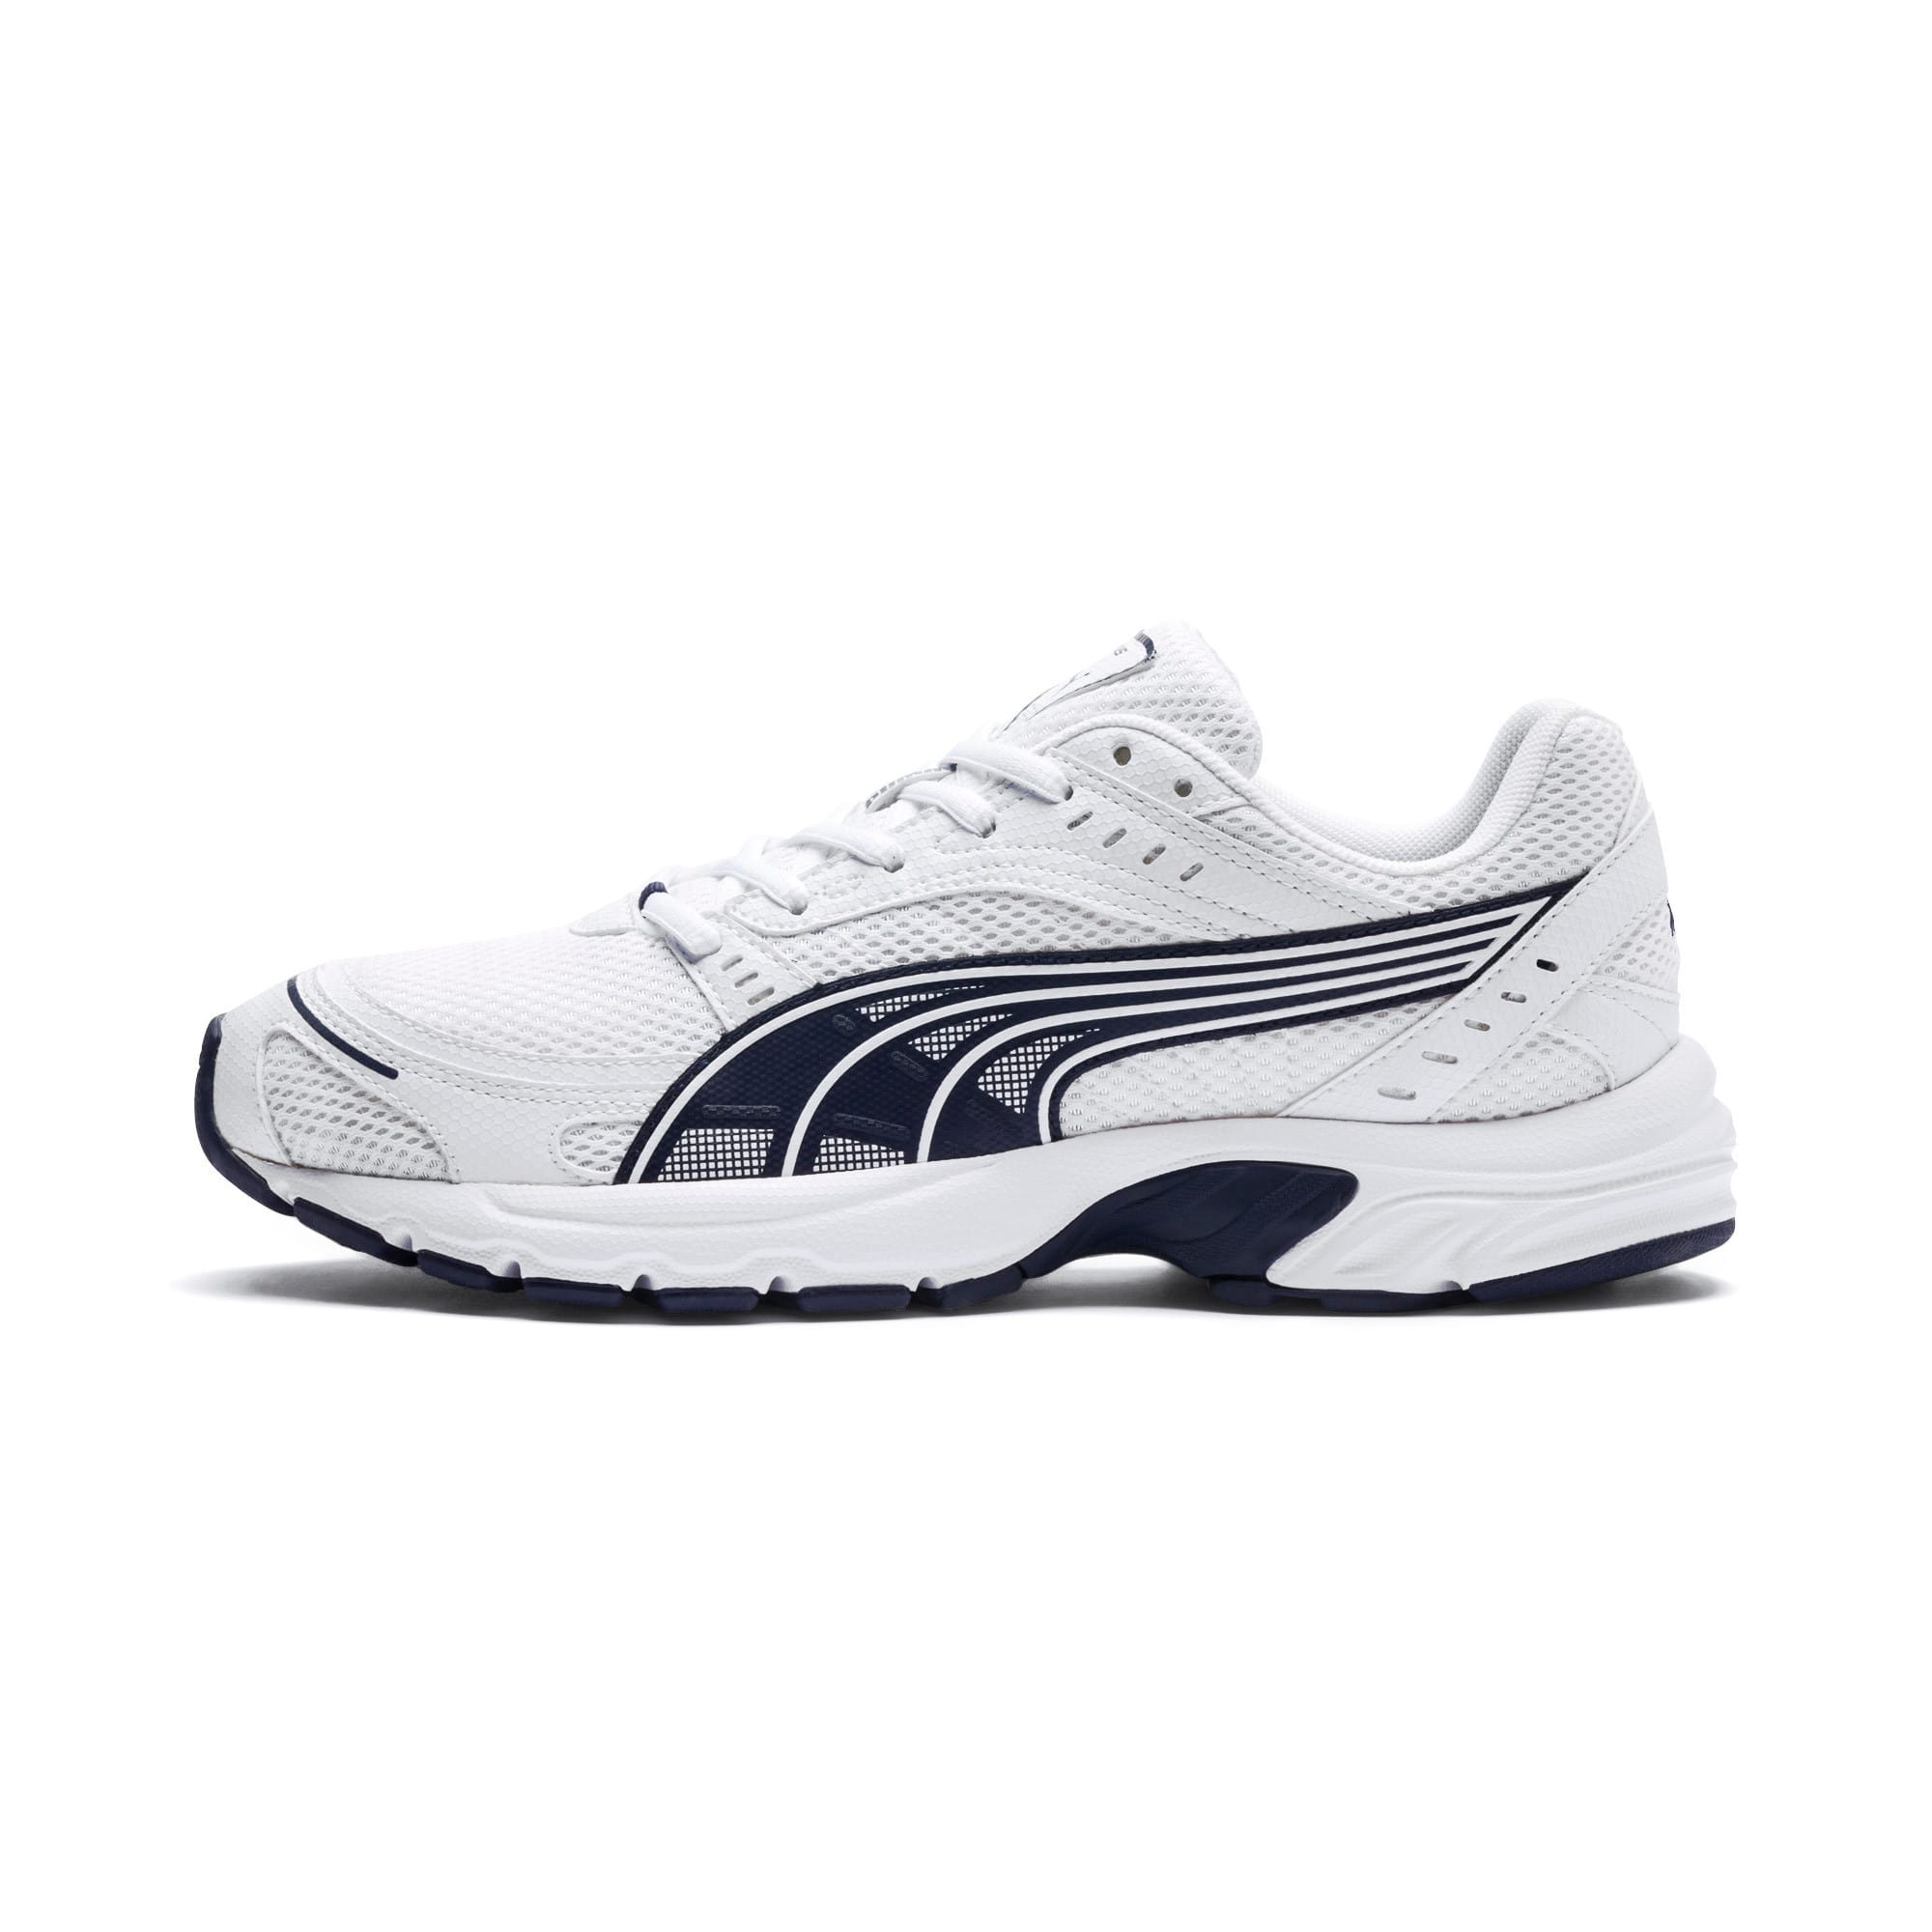 Thumbnail 1 of Axis Trainers, Puma White-Peacoat, medium-IND